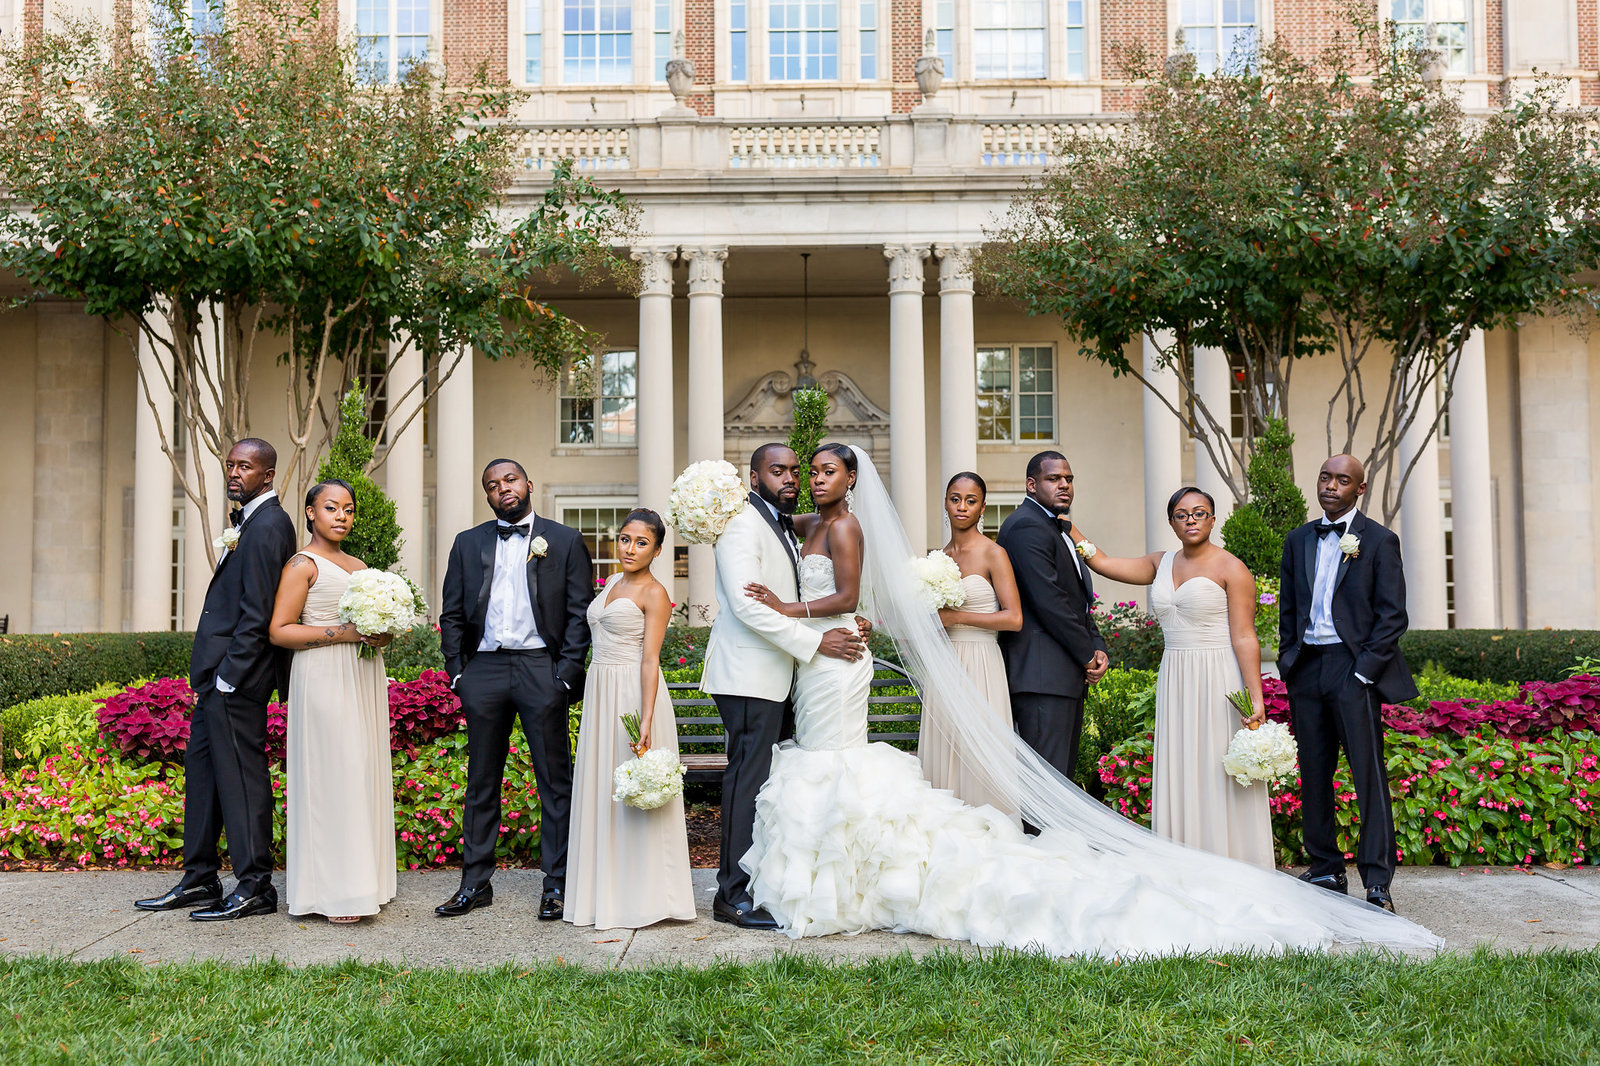 Biltmore Ballrooms Atlanta Wedding - Mecca Gamble Photography